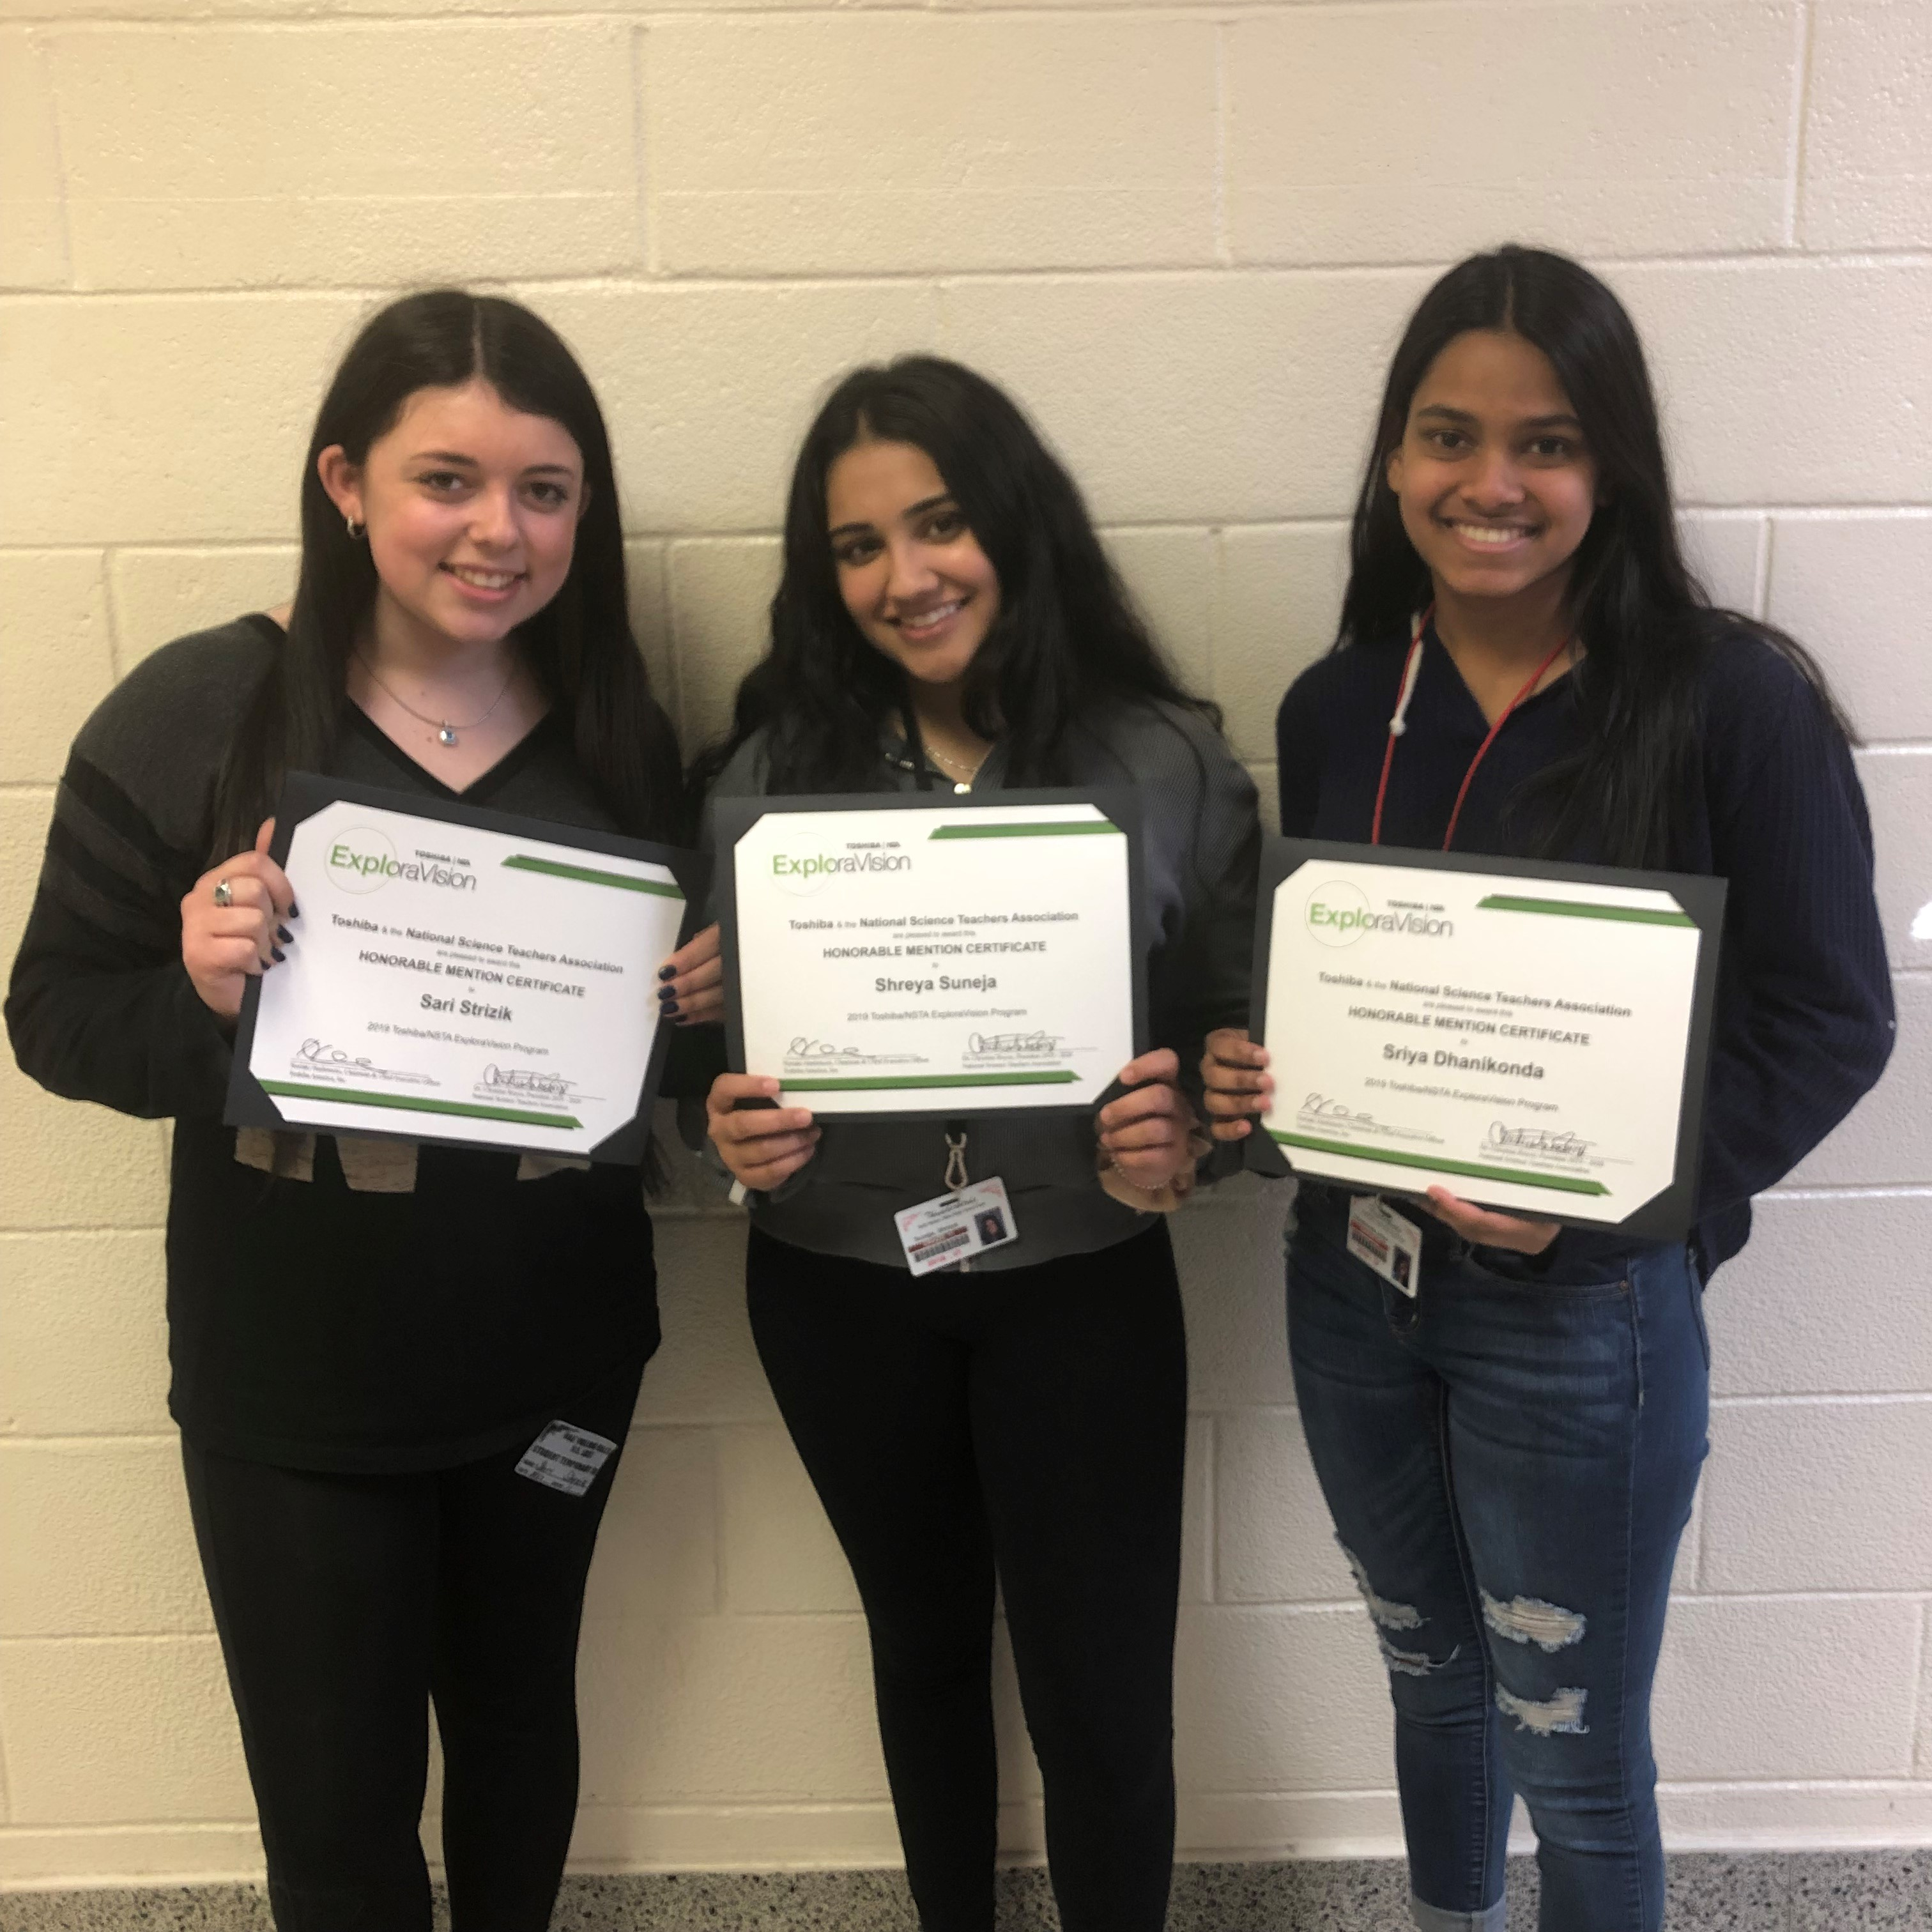 Hills East Biology Research Students Win Honorable Mention In ExploraVision Competition